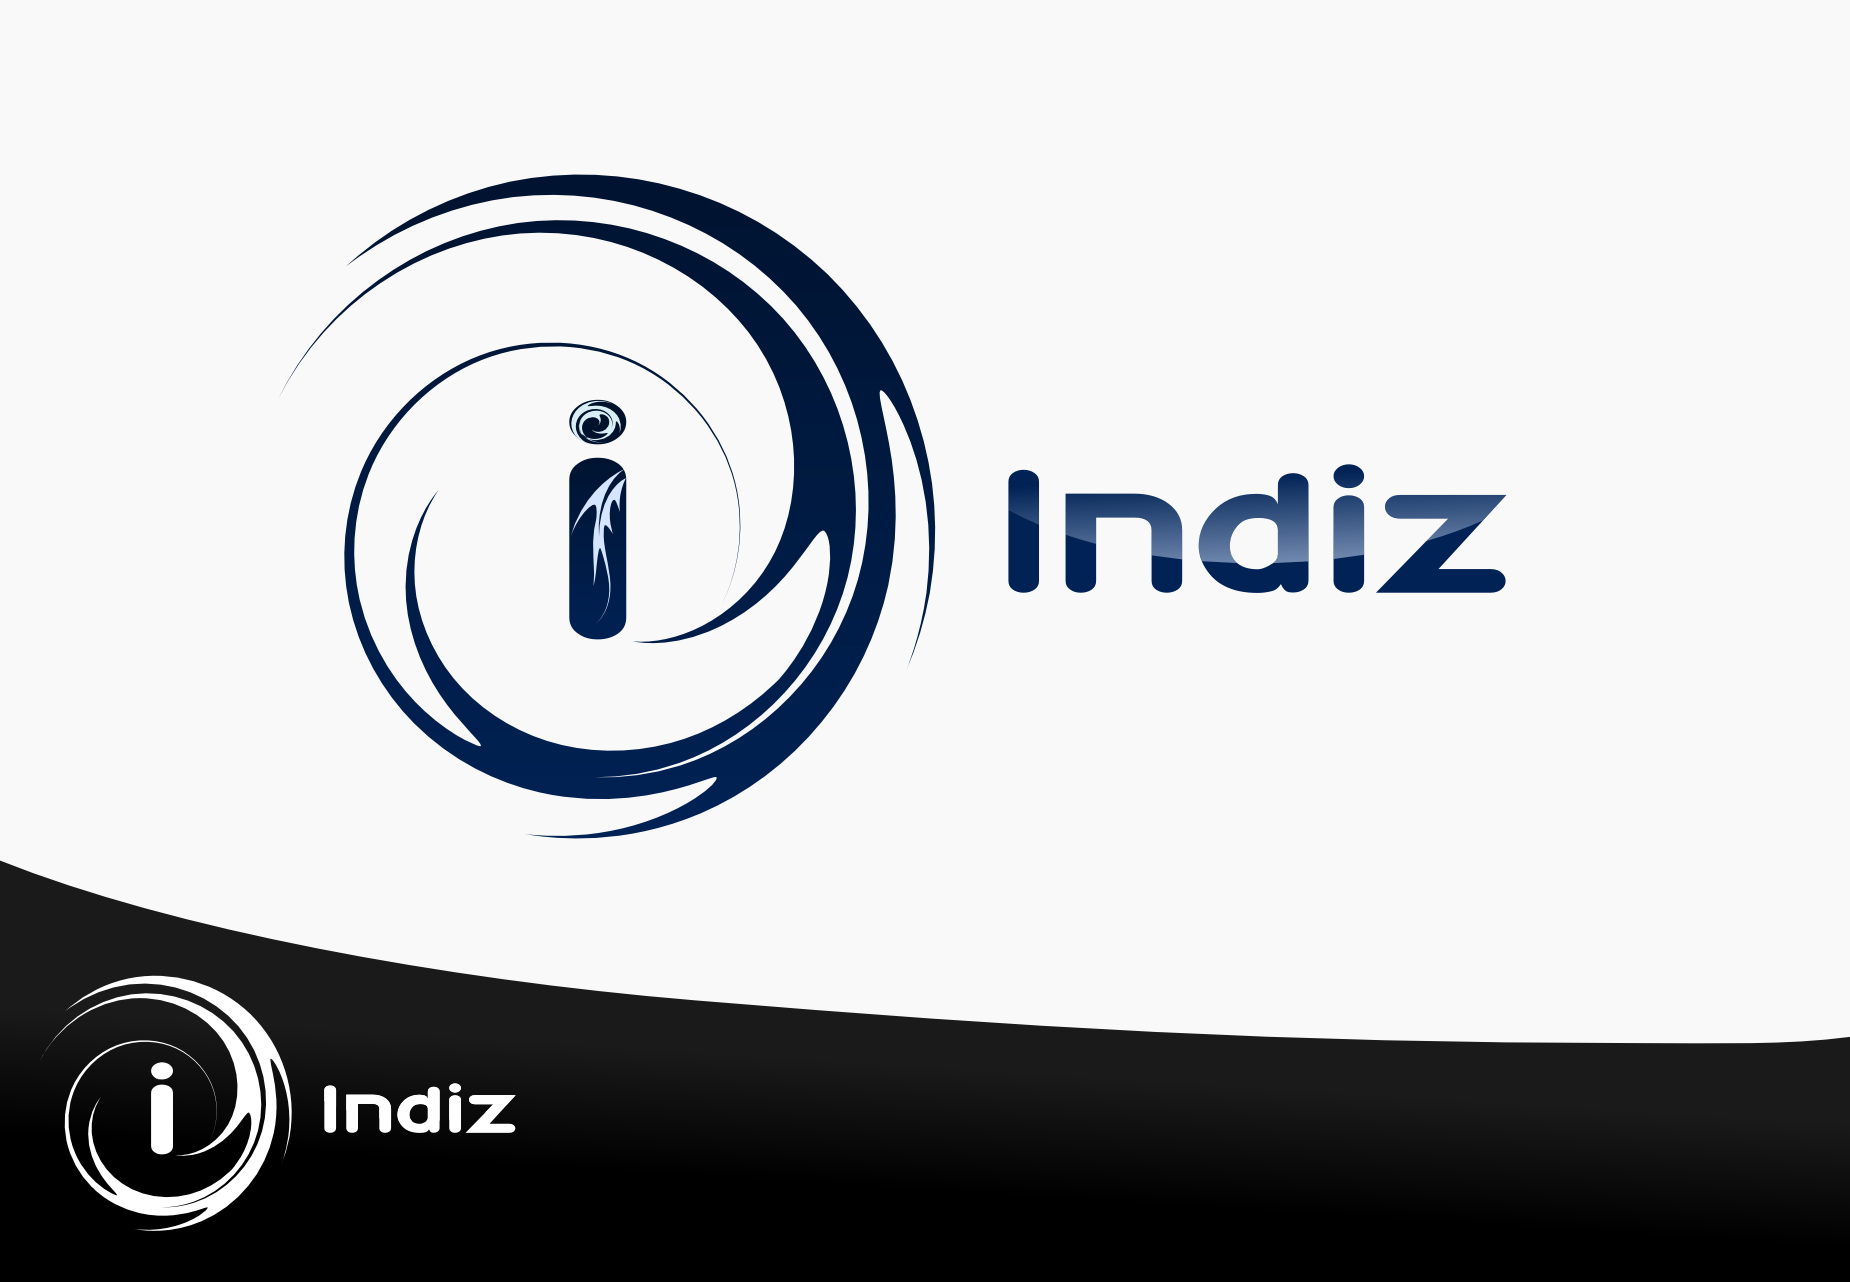 Logo Design by Arindam Khanda - Entry No. 264 in the Logo Design Contest Fun Logo Design for Indiz.